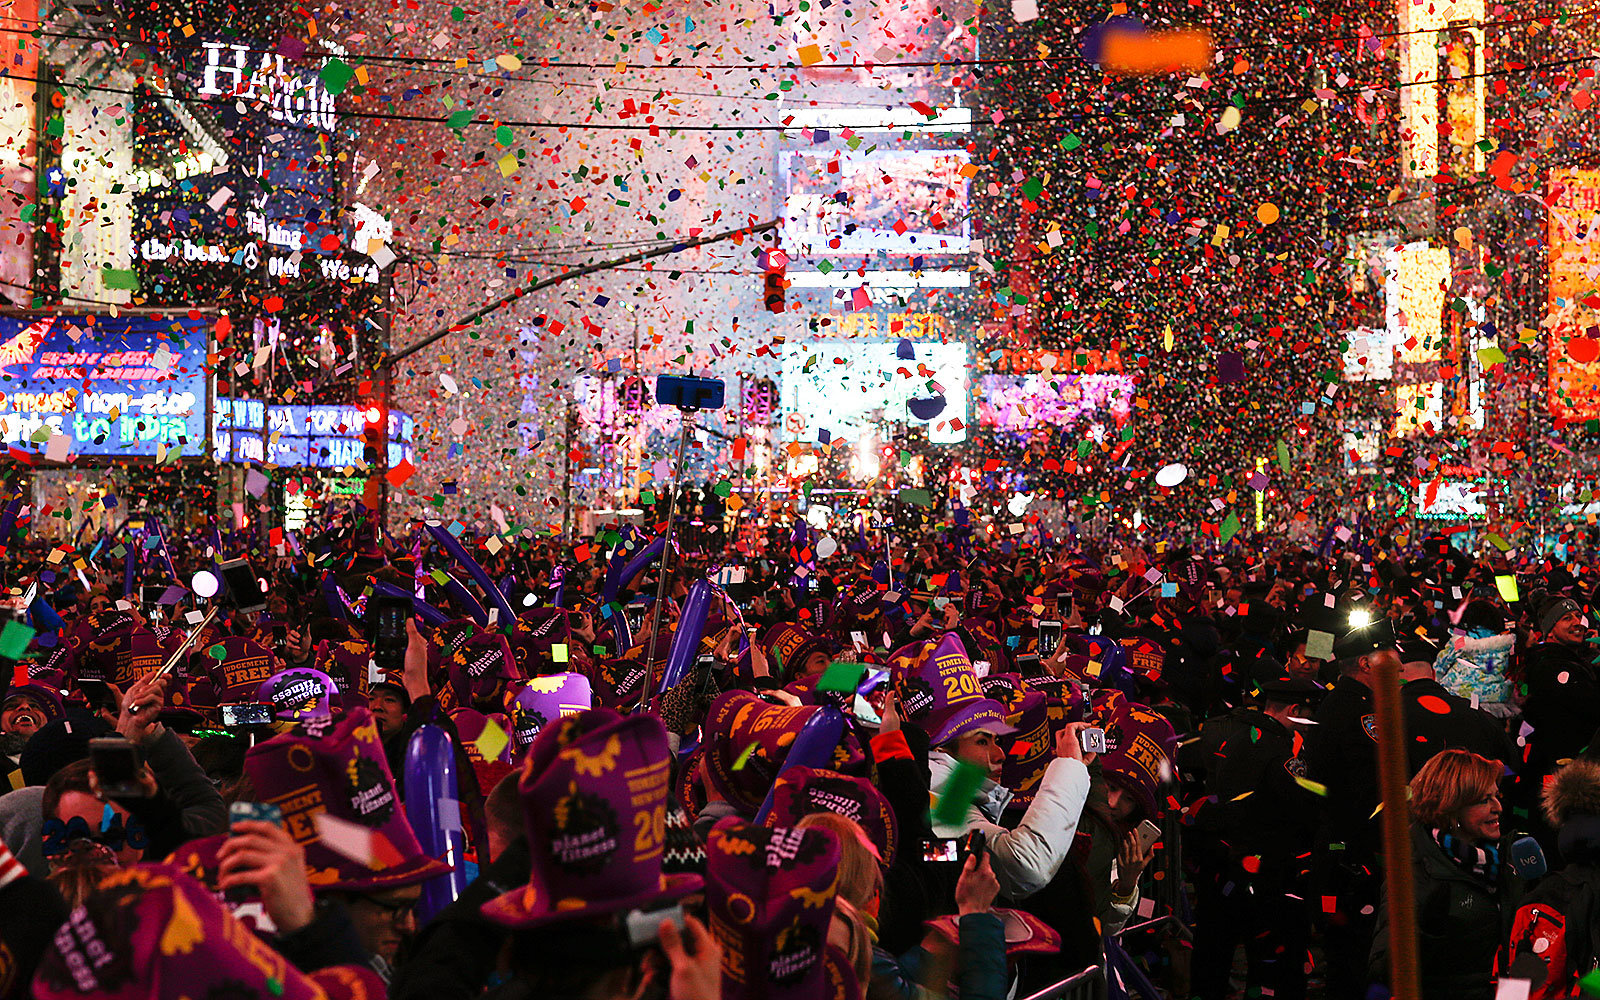 Free things to do on New Year's 2017